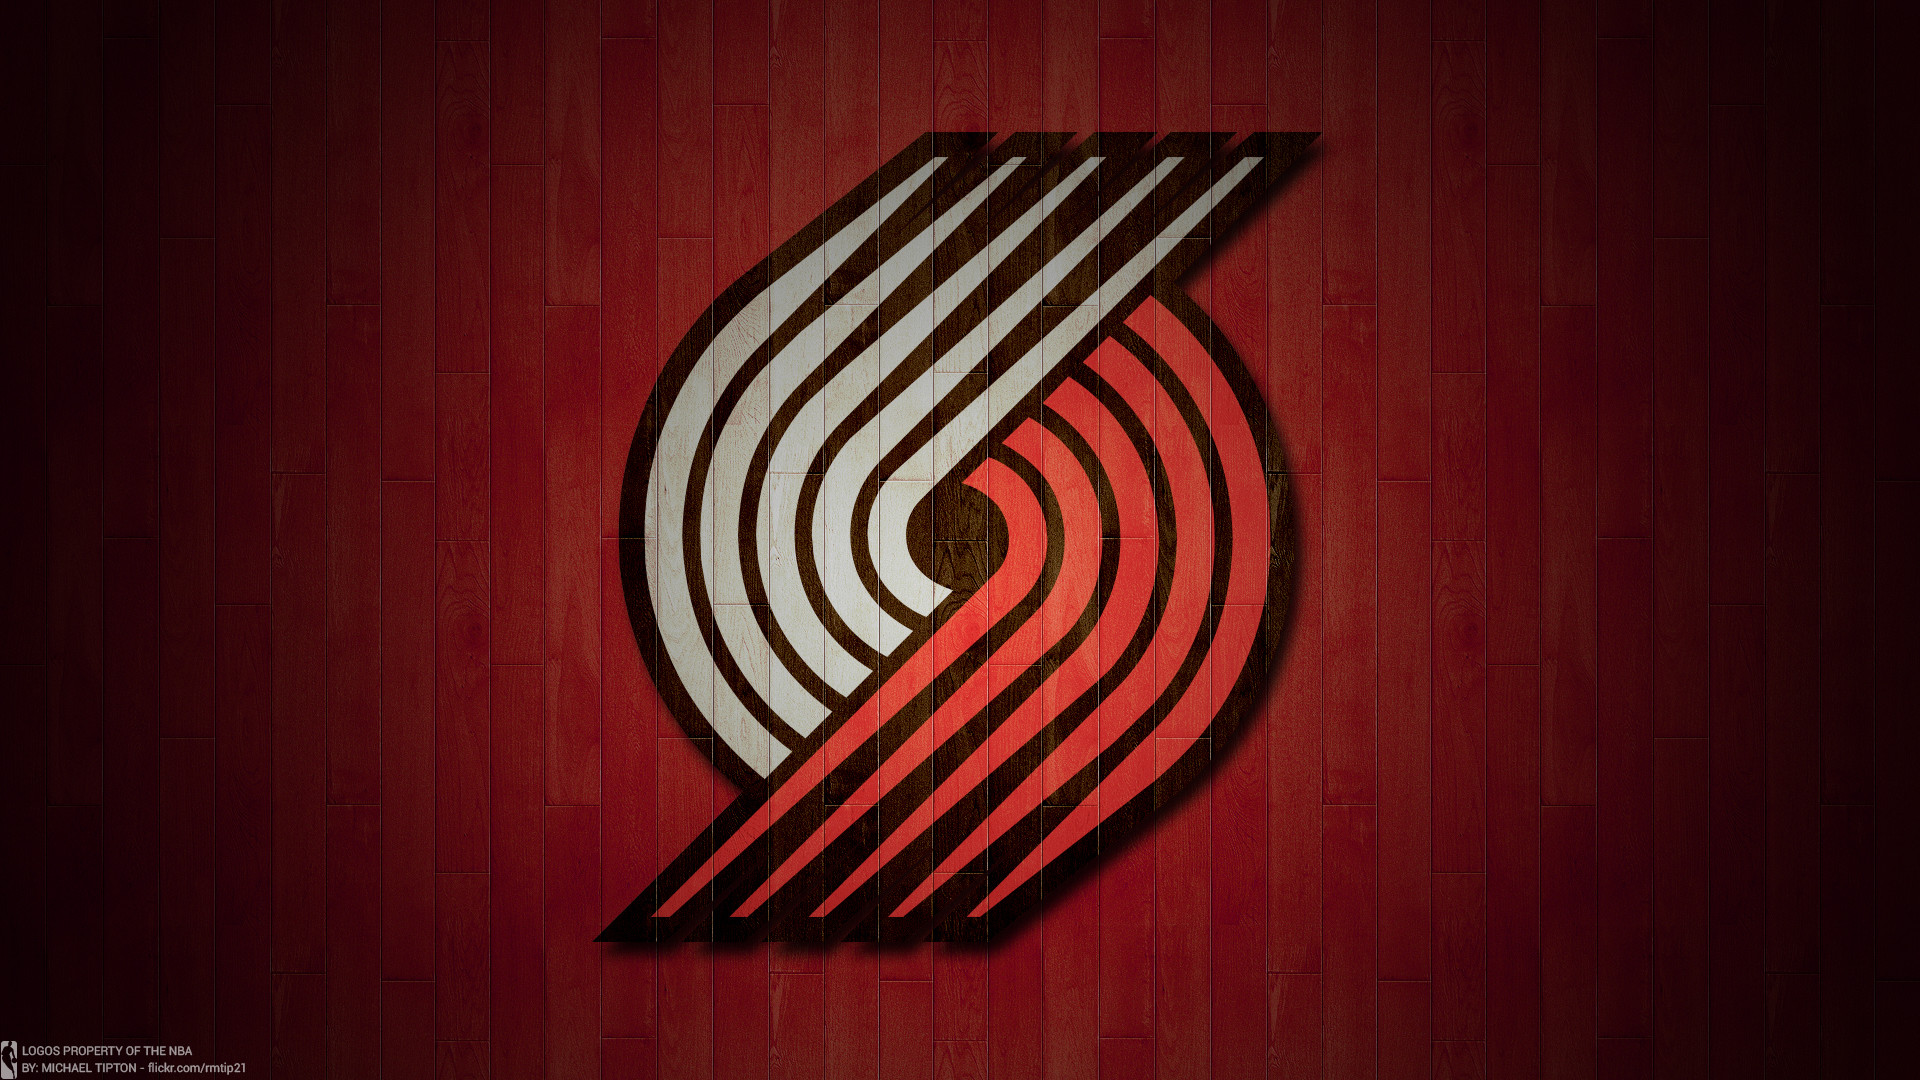 1920x1080 ... NBA 2017 Portland Trail Blazers hardwood logo desktop wallpaper